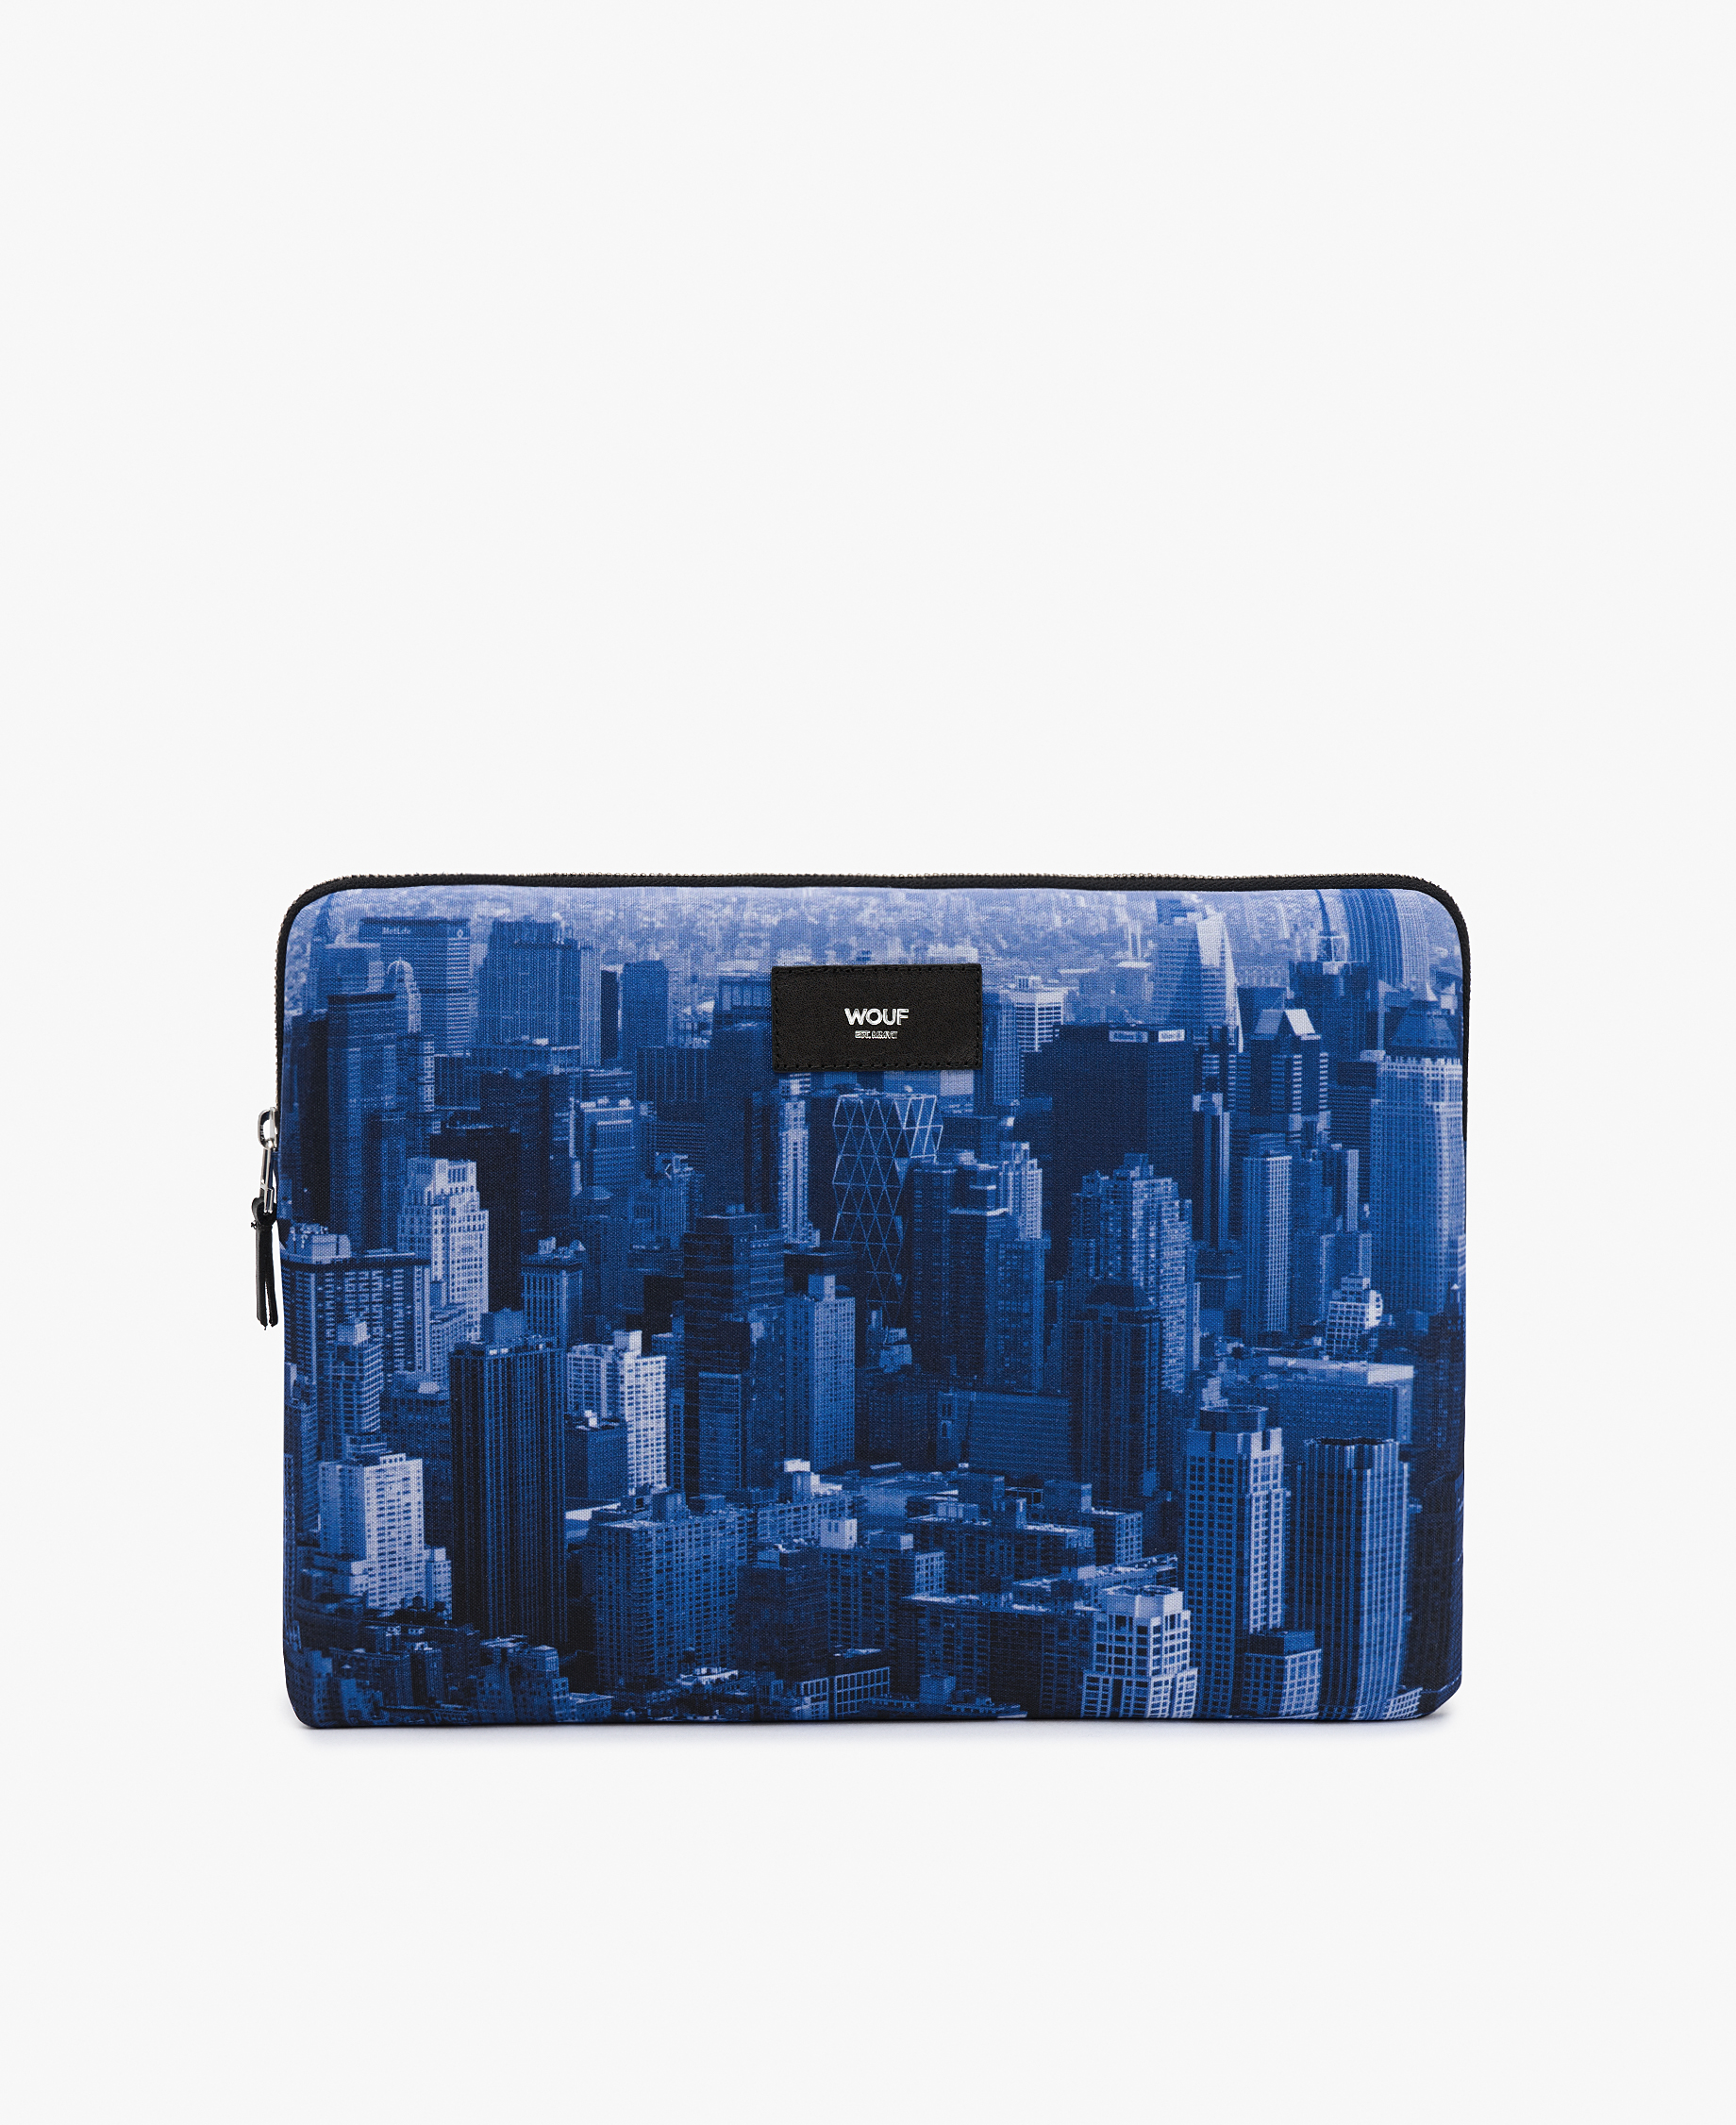 man blue laptop case